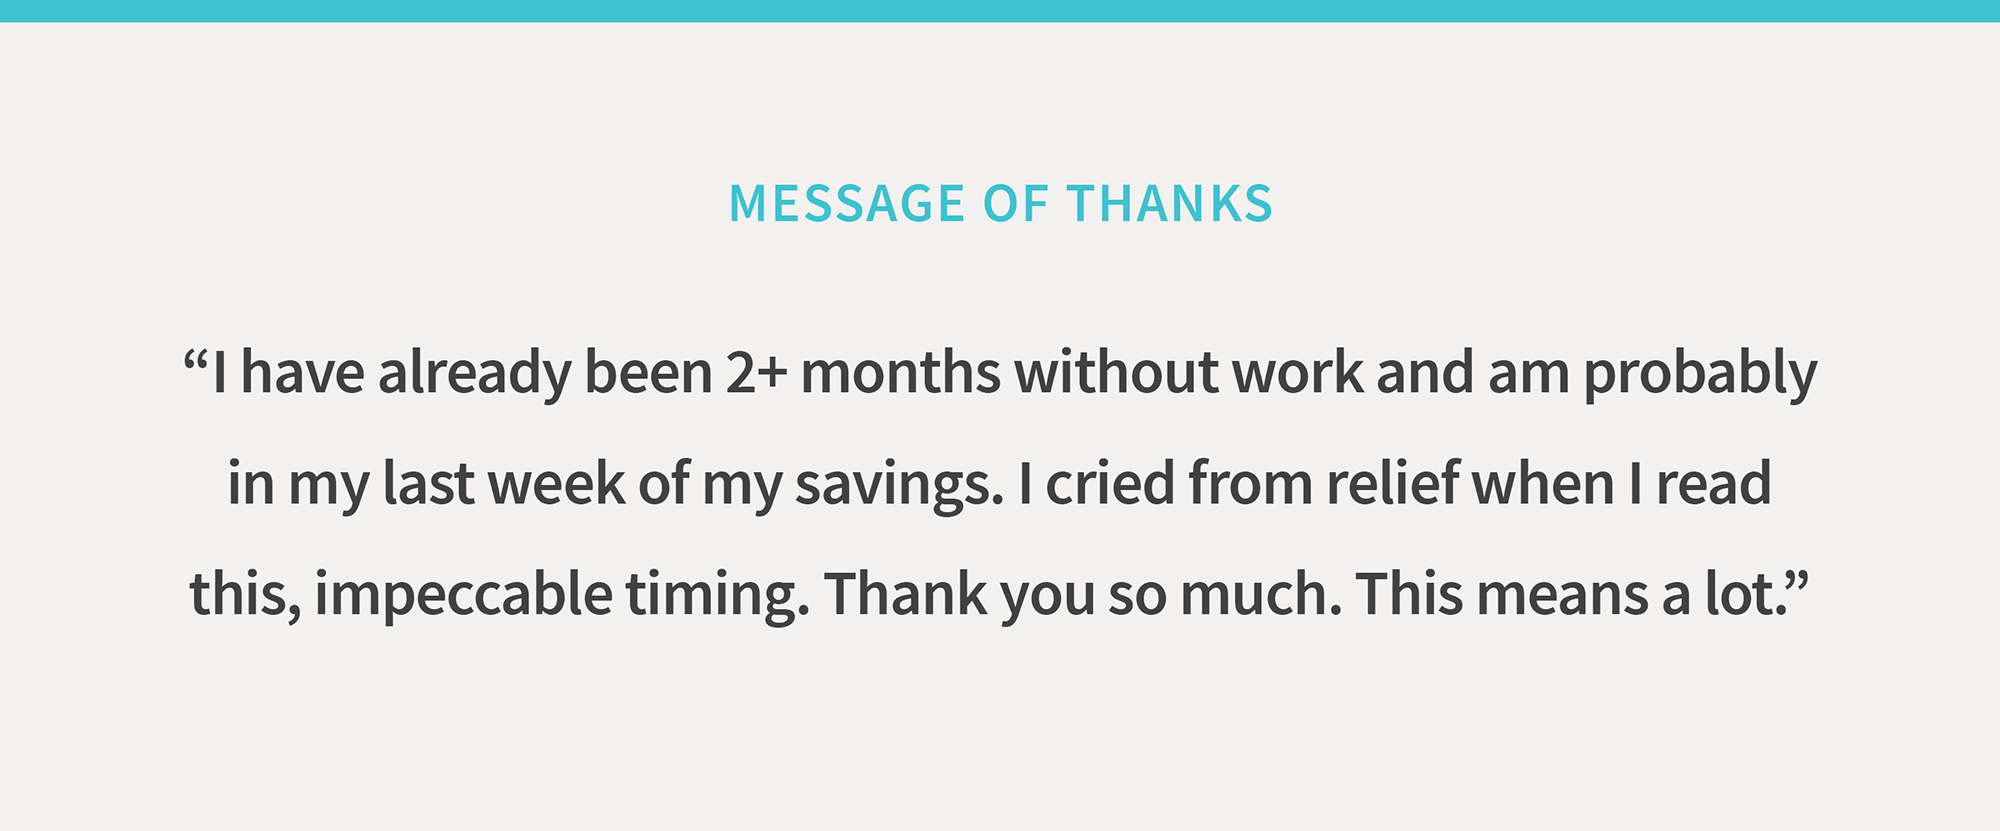 "Message of thanks: ""I've alredy been 2+ months without work and am probably in the last week of my savings. I cried from relief when I read this, impeccable timing. Thank you so much. This means a lot."""